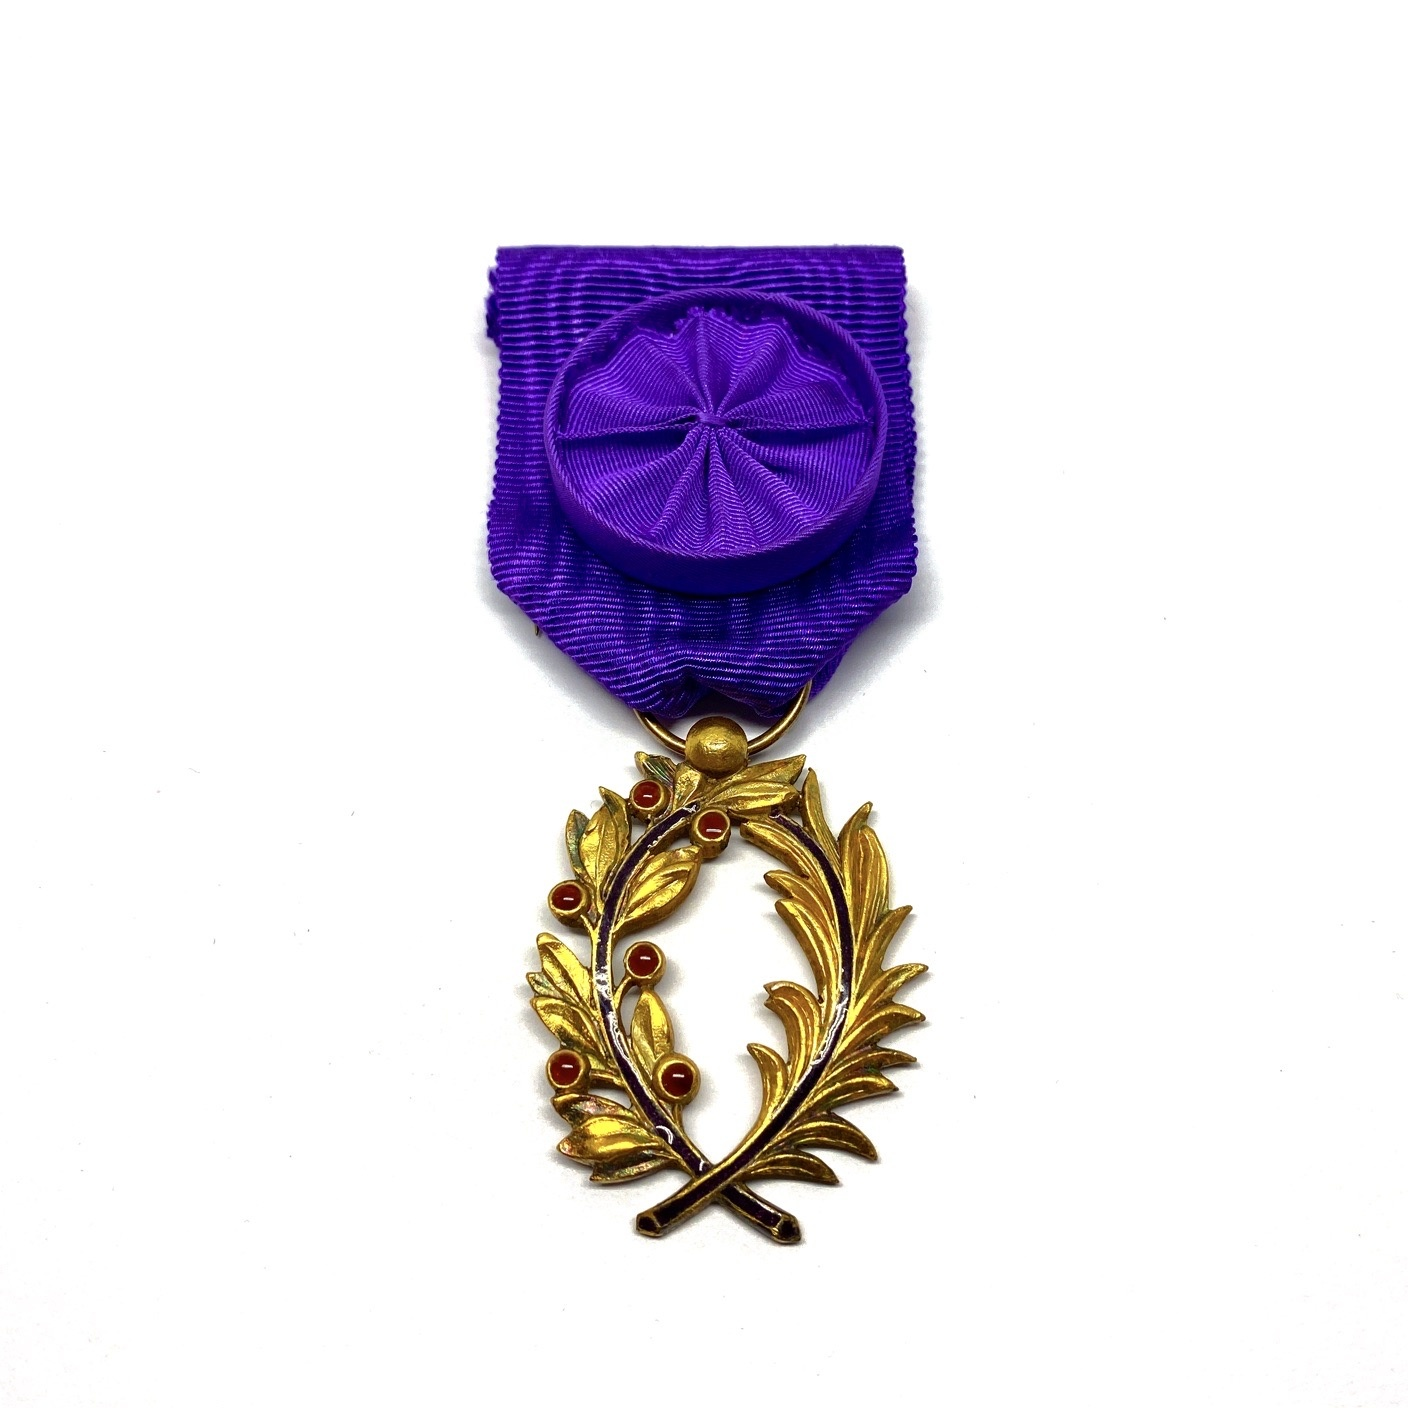 Decoration Officer in the Order of the Academic Palms (Ordre des Palmes Académiques)